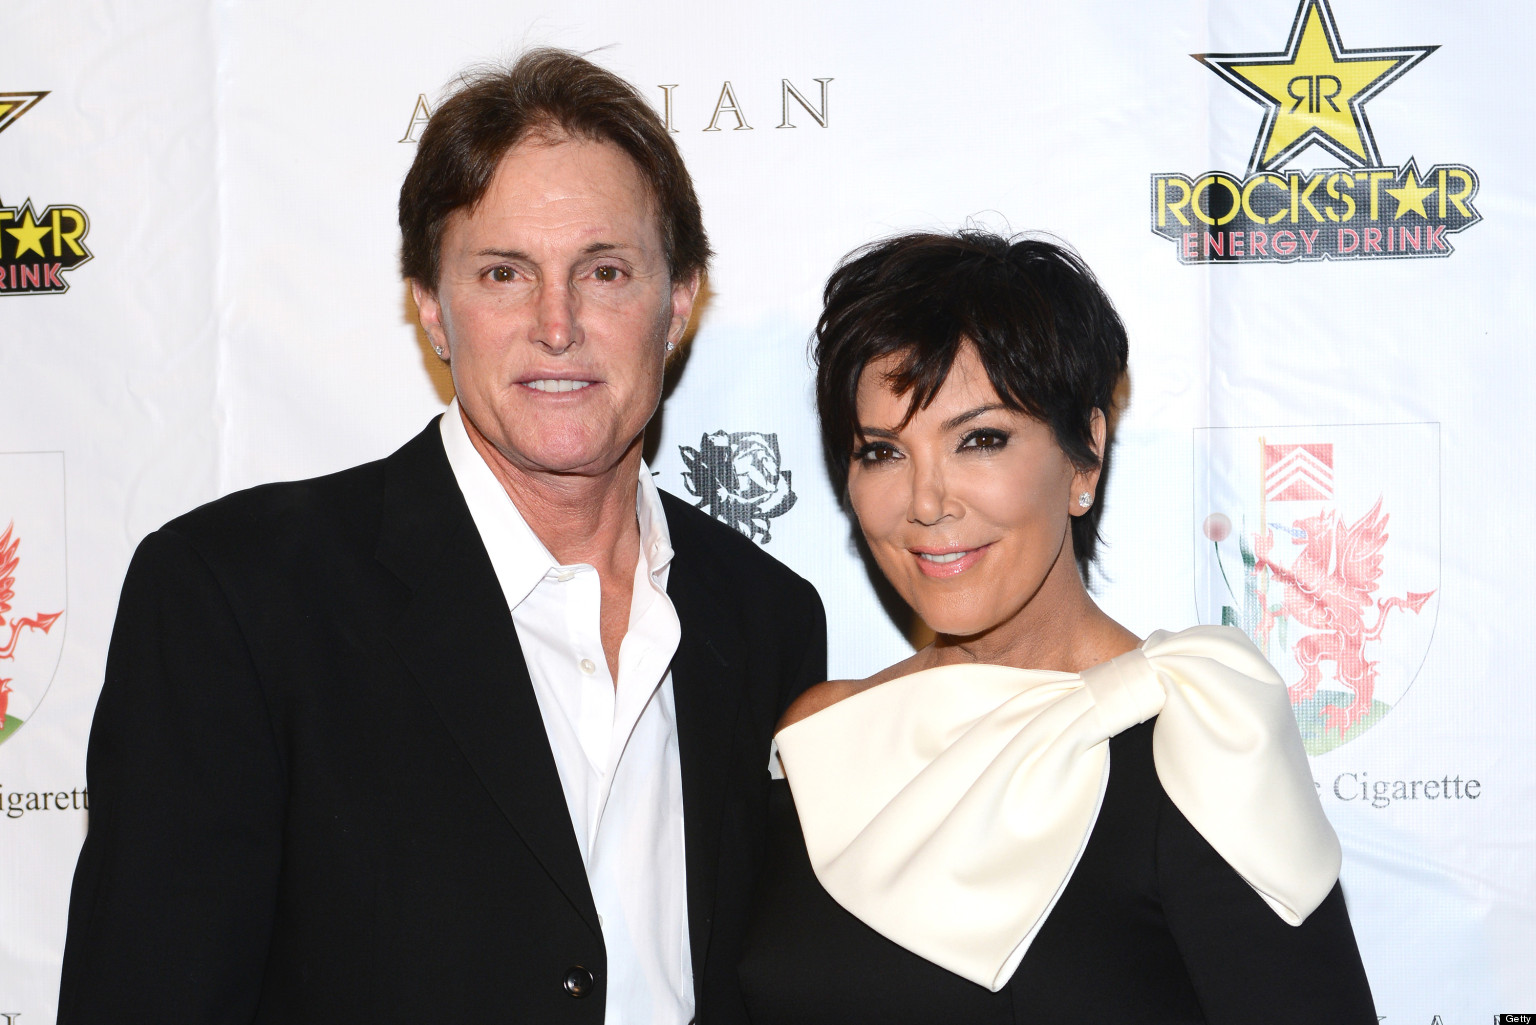 Kris Jenner, Bruce Jenner SEPARATE After 22-Year Marriage